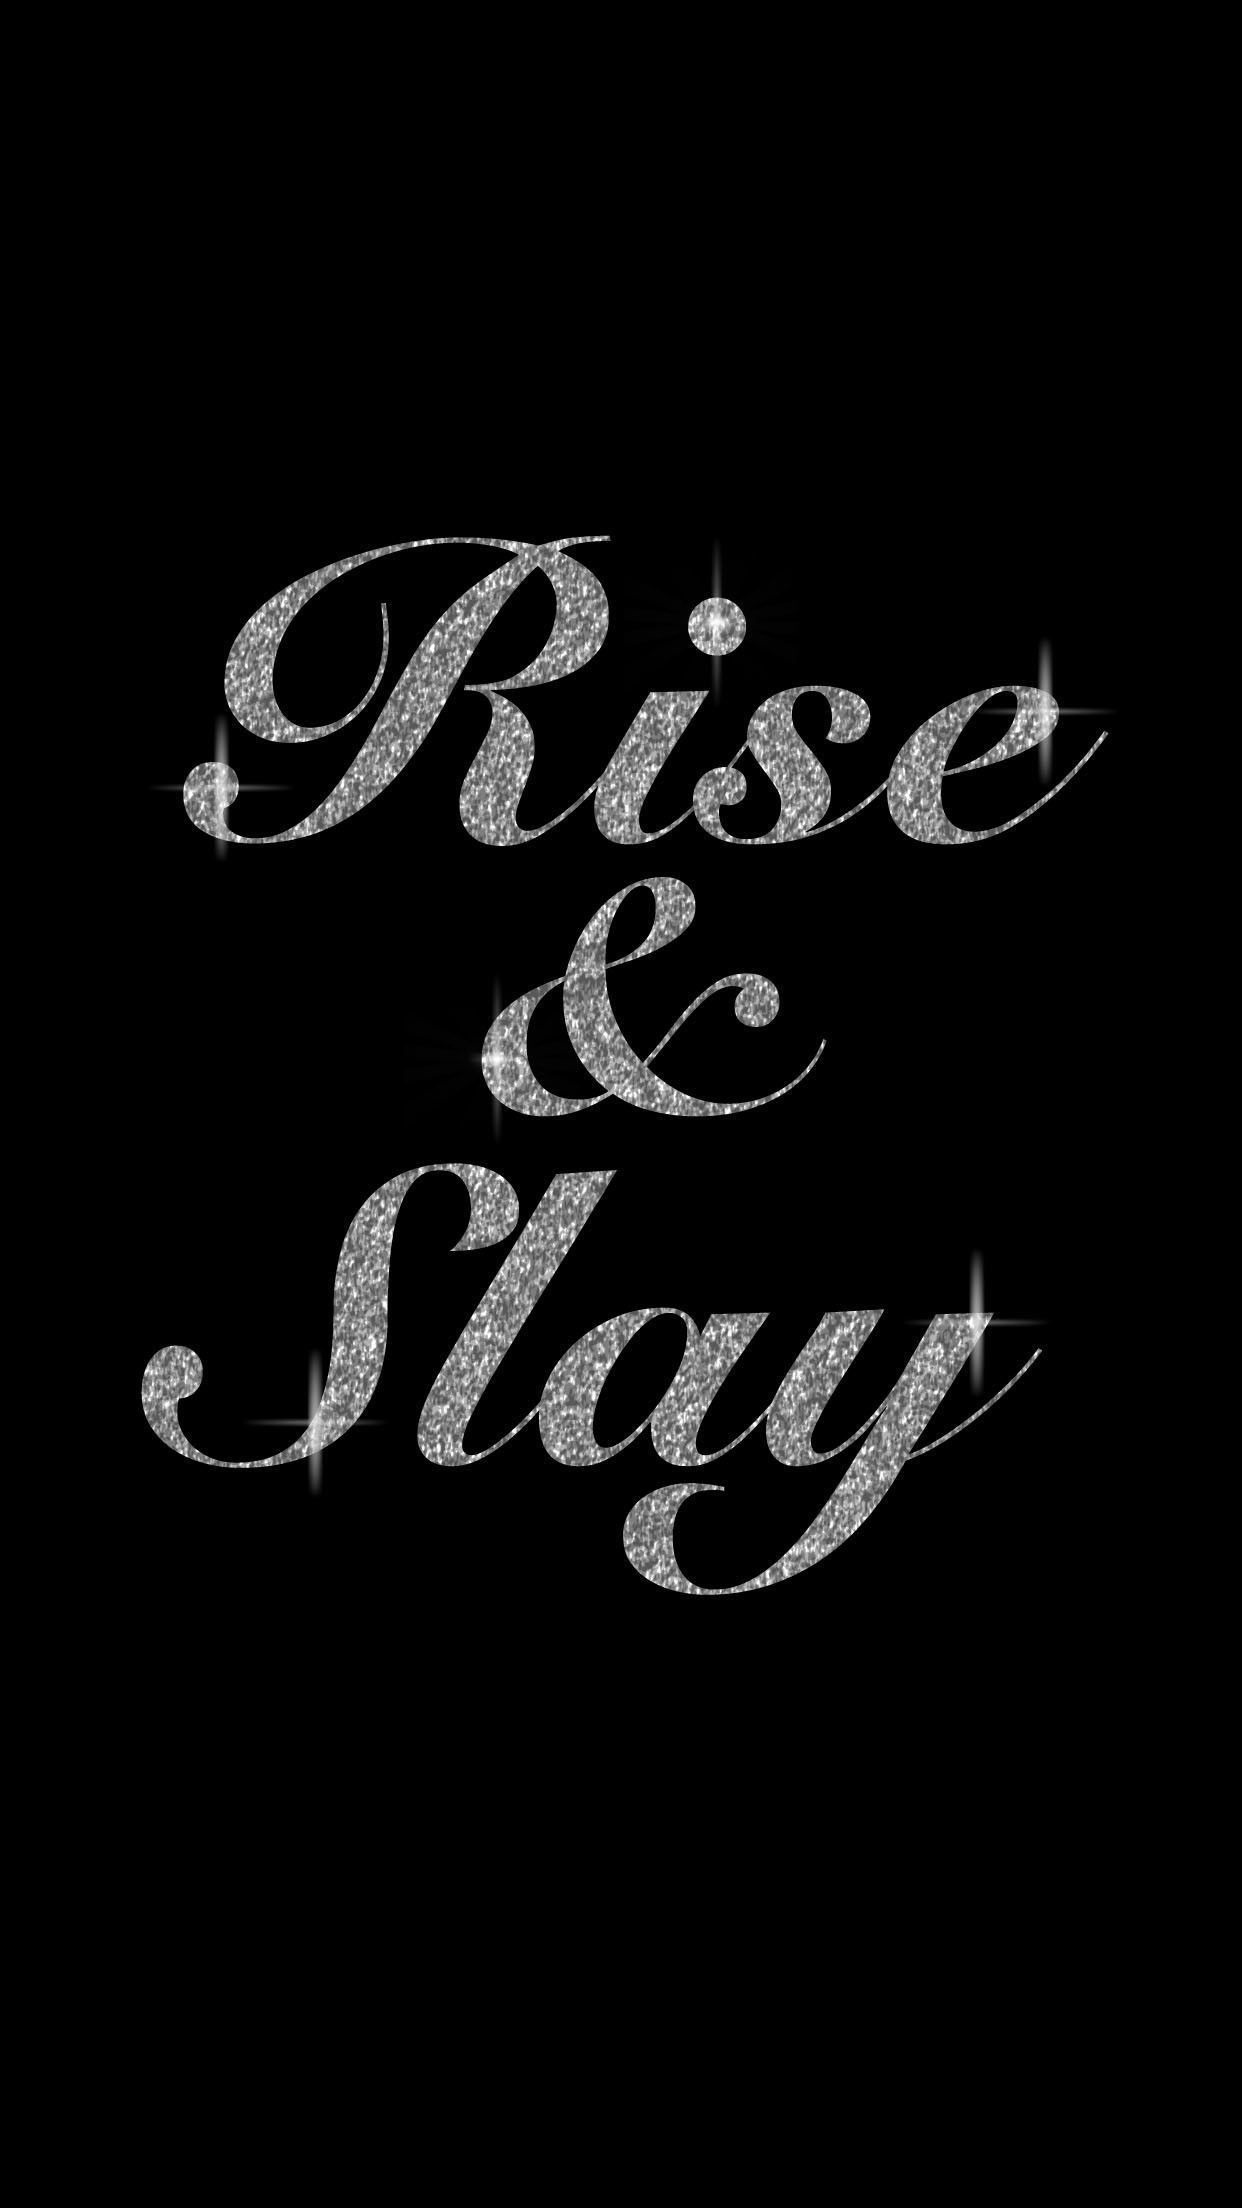 Iphone Wallpaper Motivational Quotes Lockscreen Ipcwallpapers Quotes Lockscreen Glitter Phone Wallpaper Slay Quotes